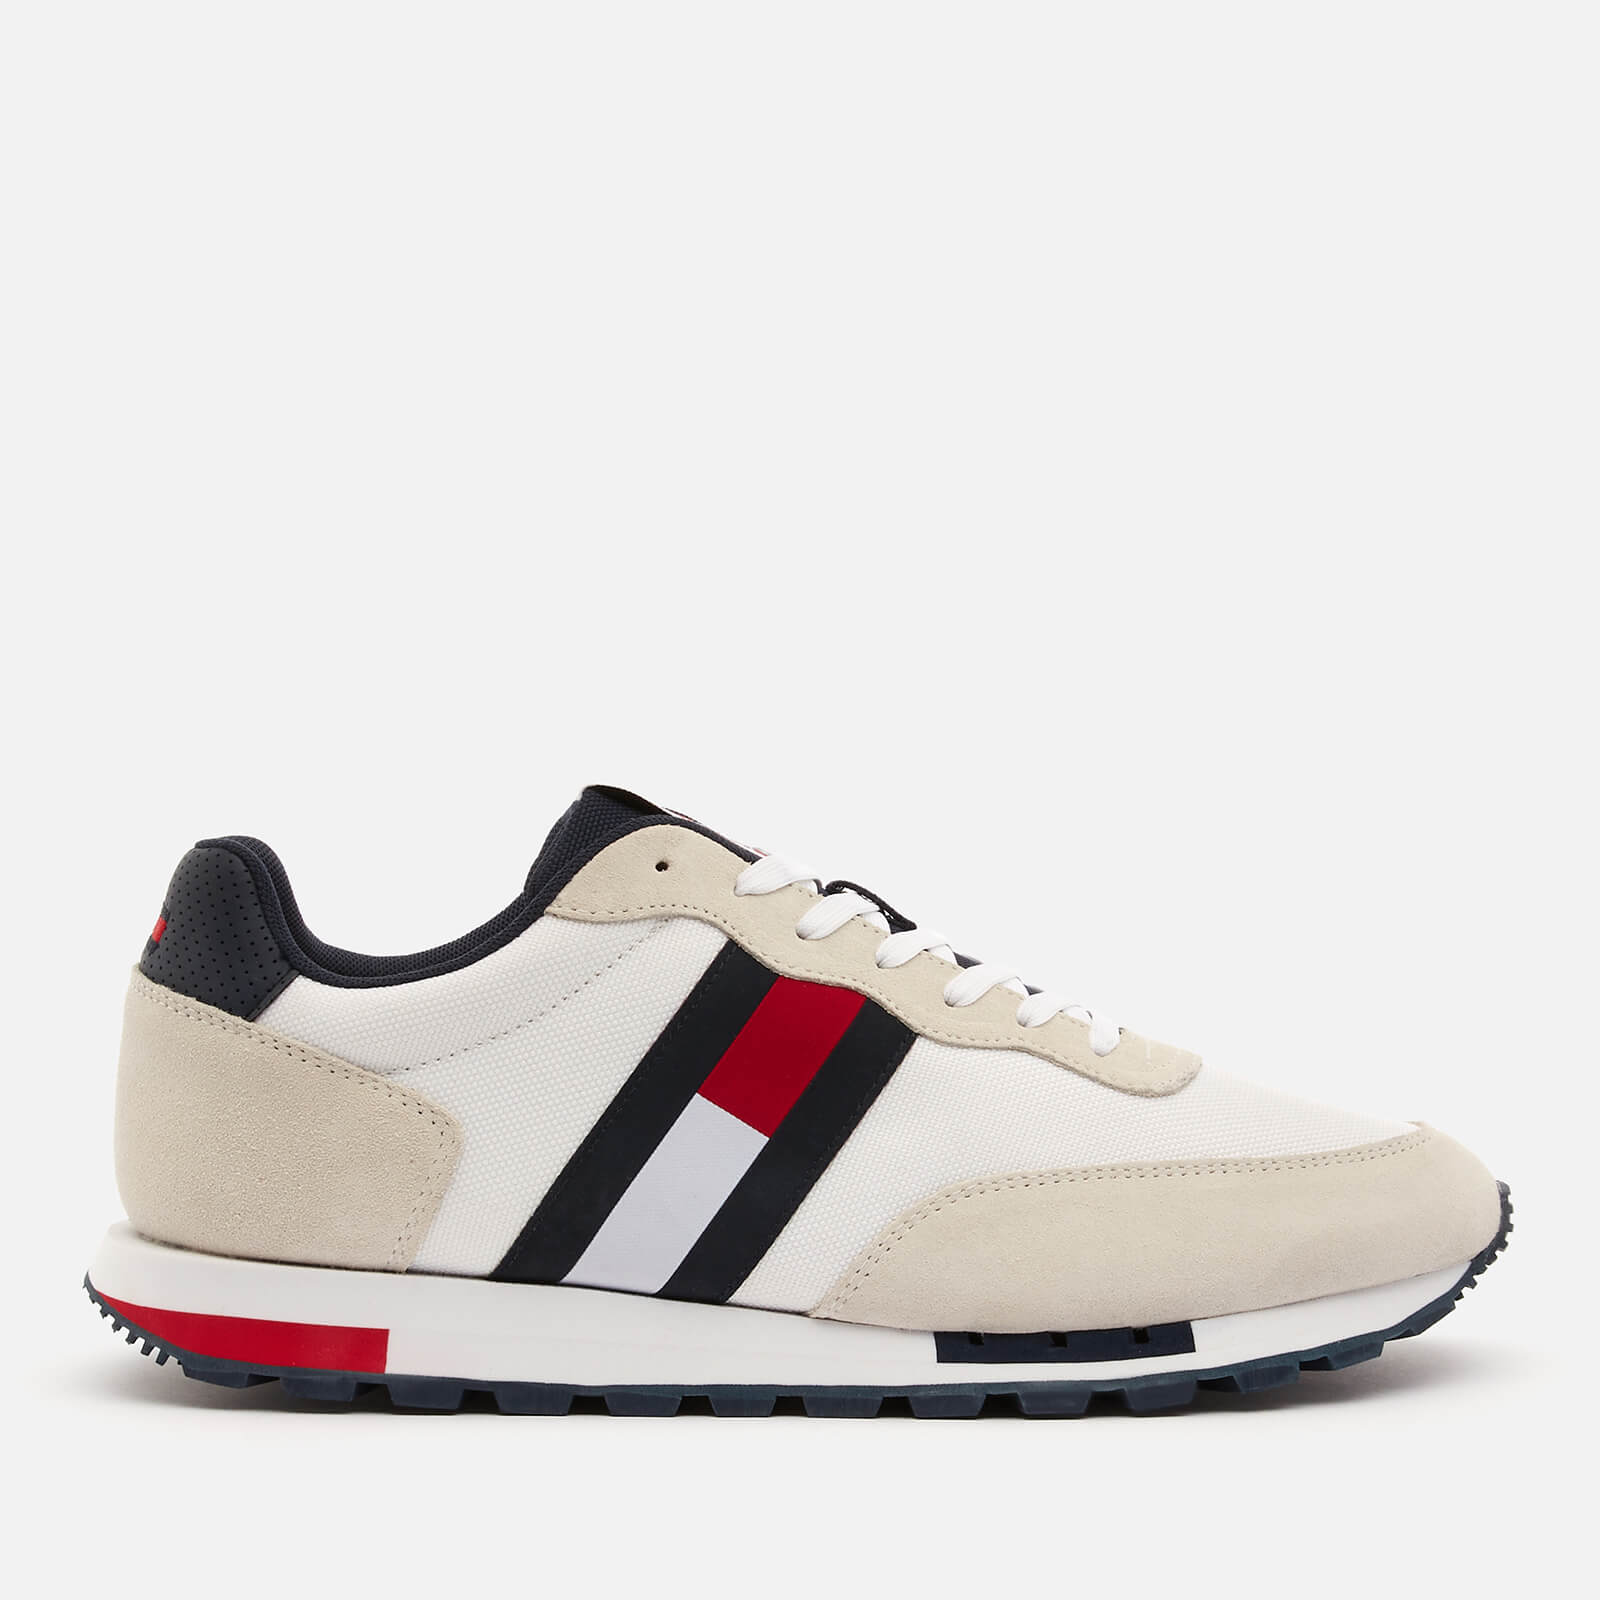 Tommy Jeans Men's Retro Mix Pop Running Style Trainers - White - UK 7